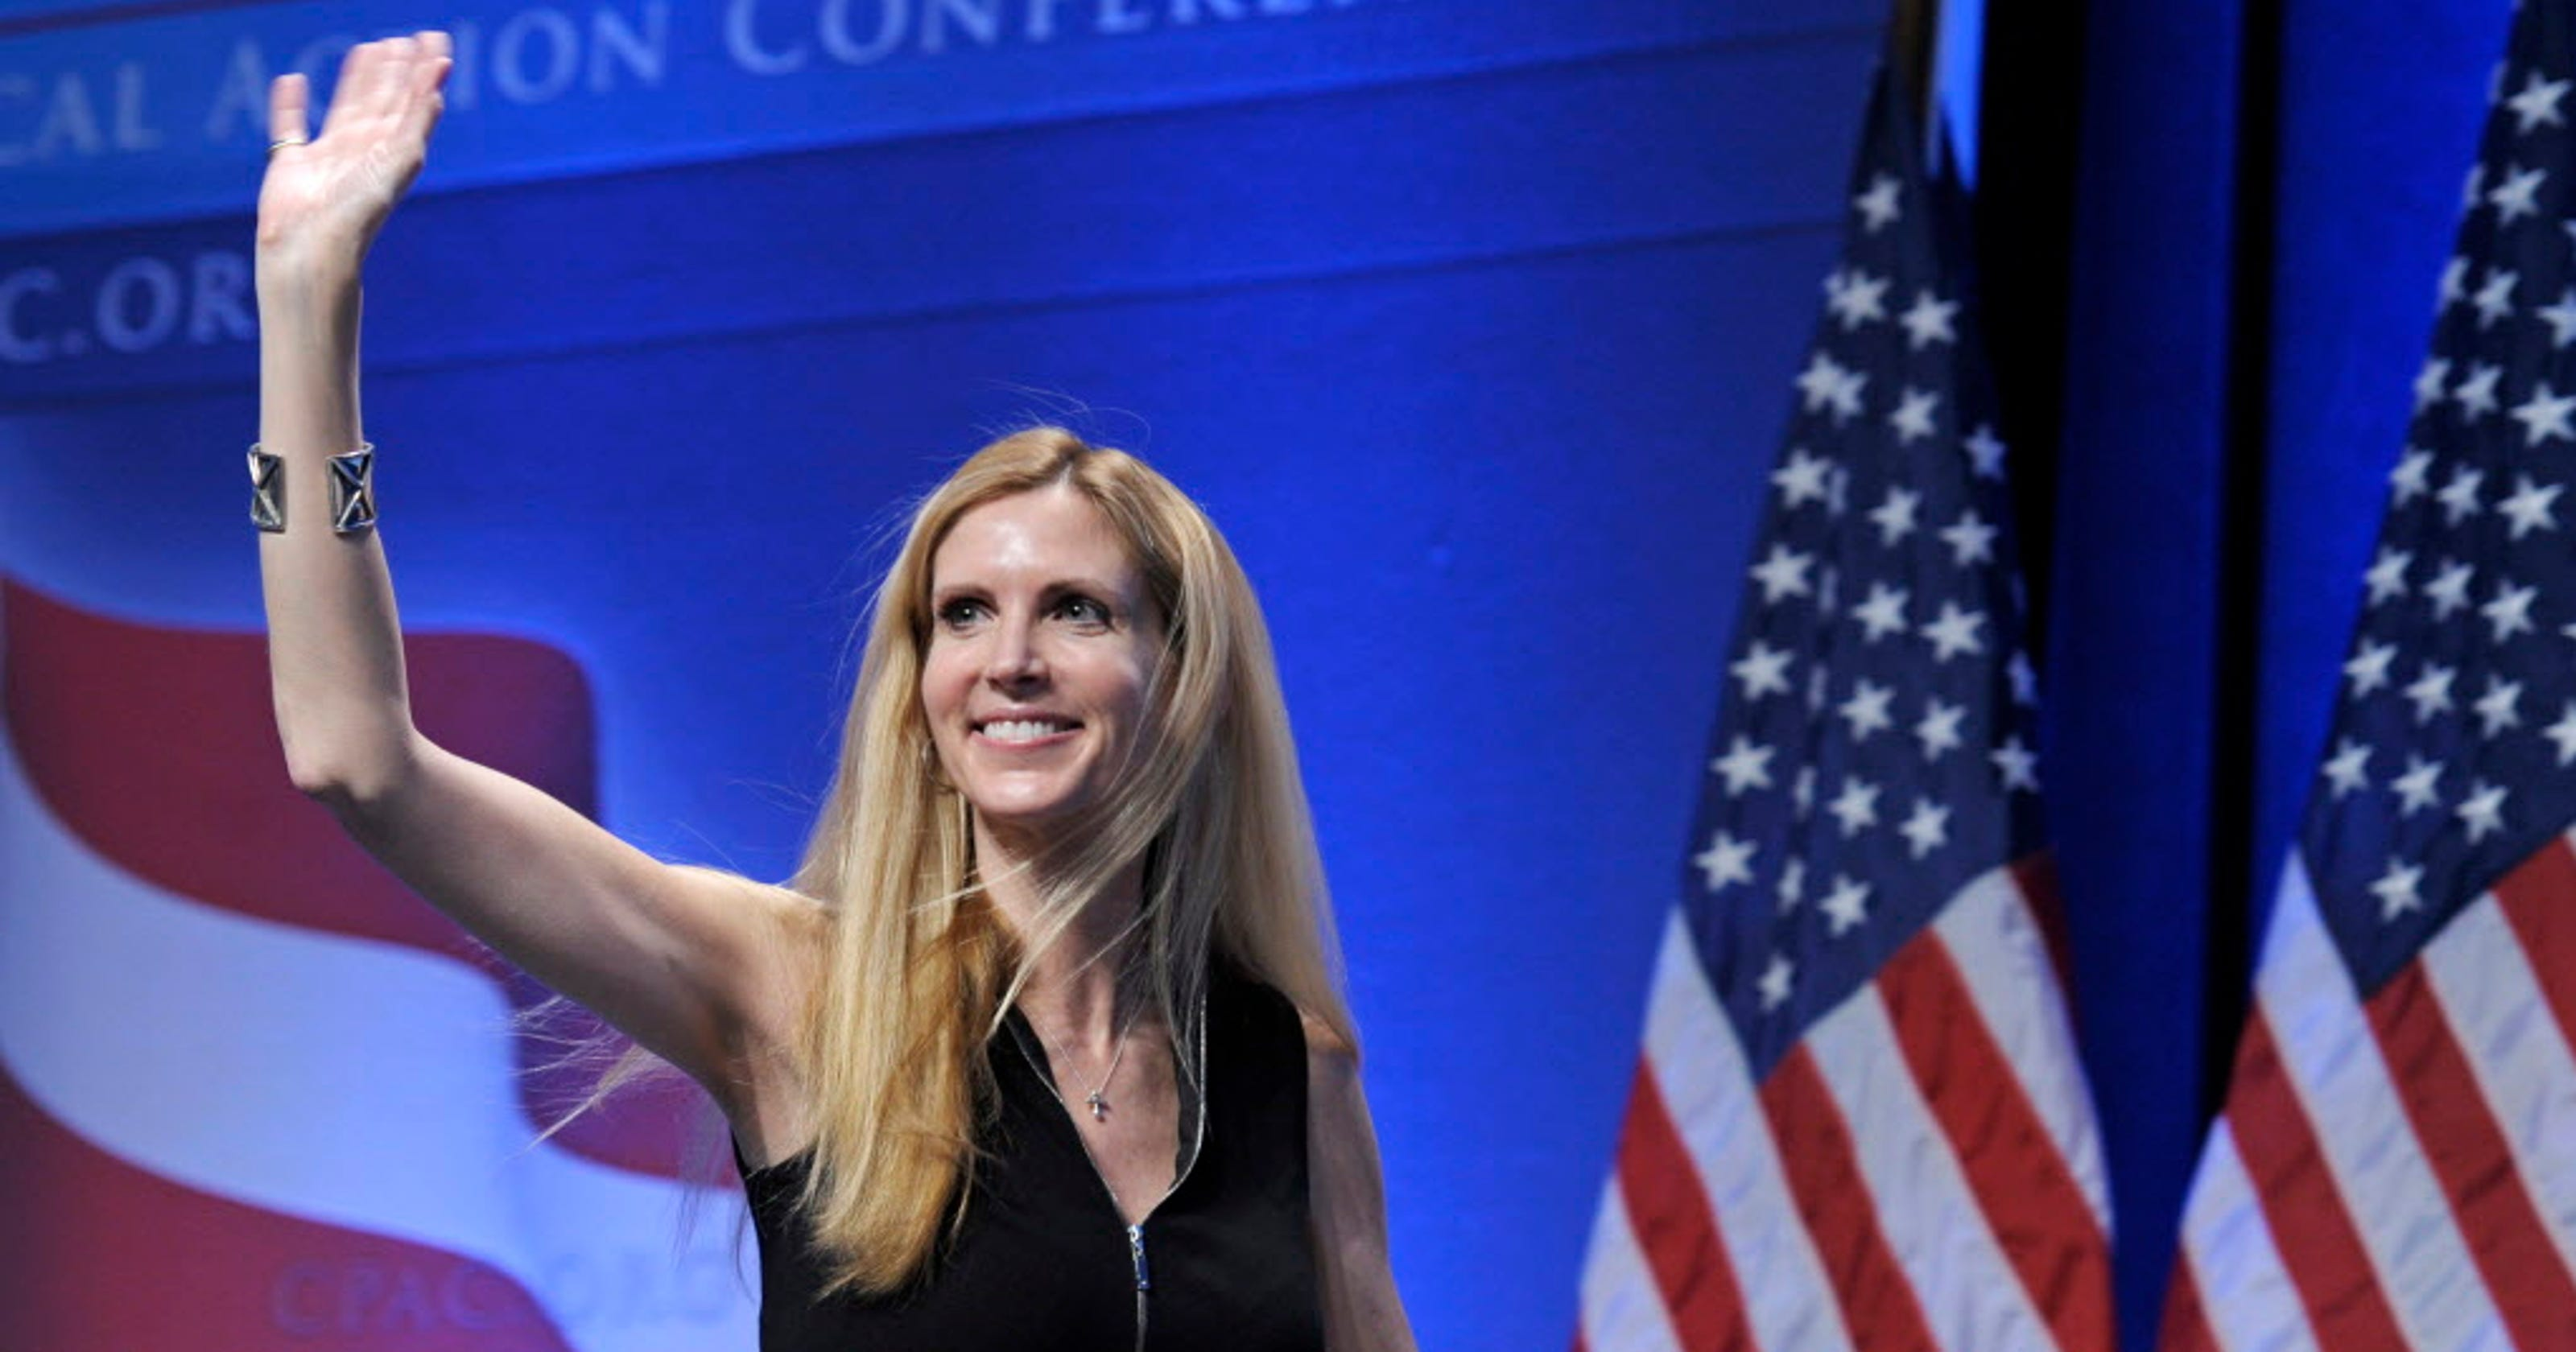 Hurricane Irma: Rush Limbaugh, Ann Coulter criticized on doubts